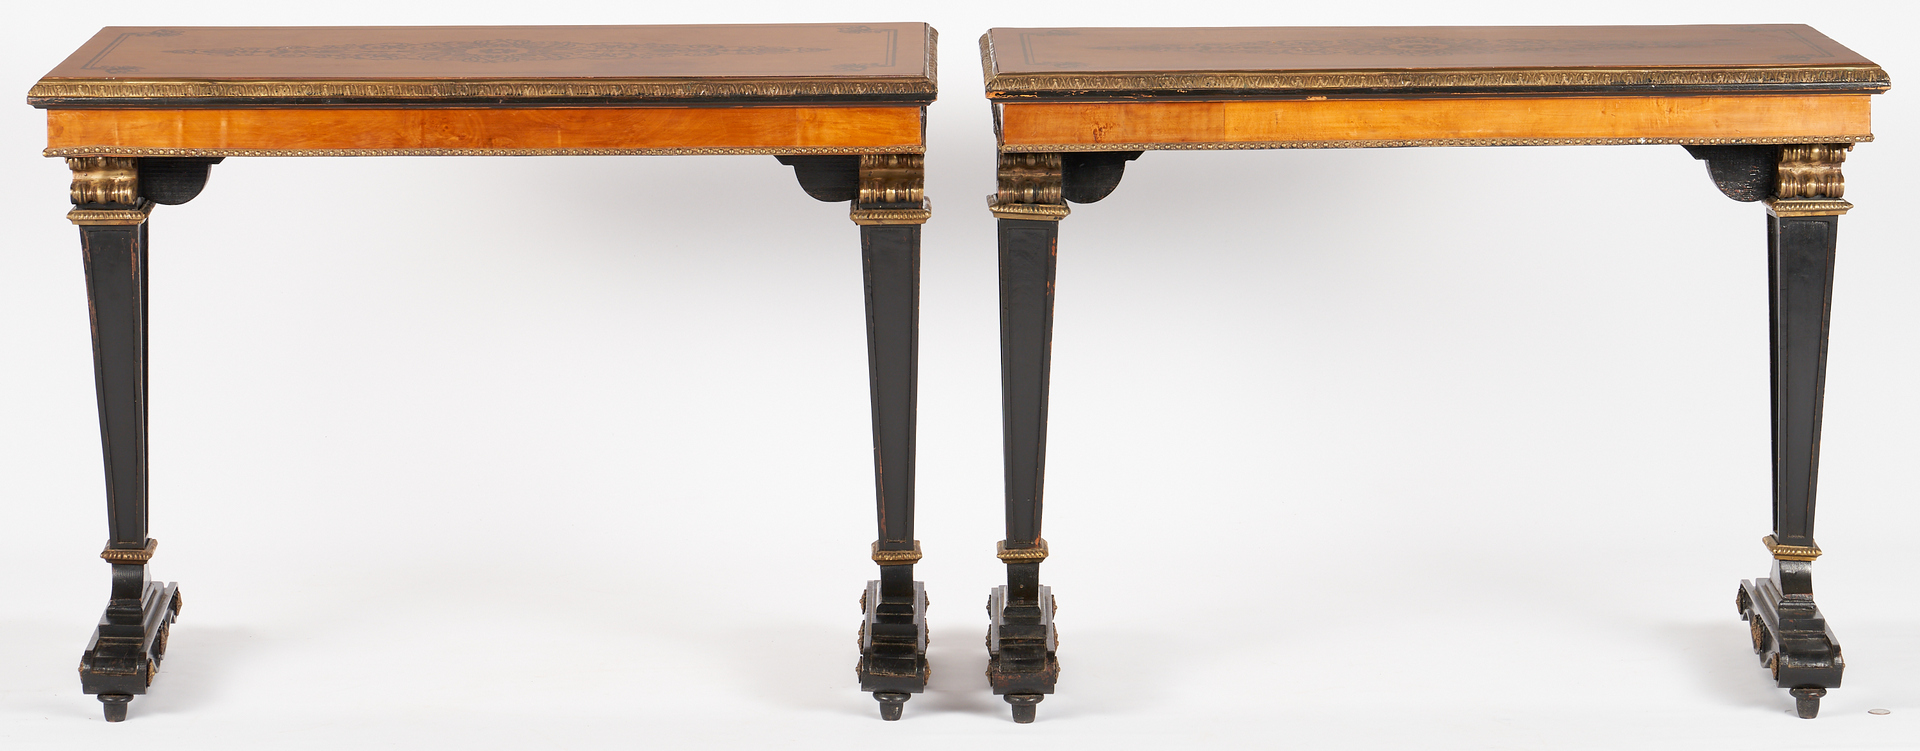 Lot 234: Pair Continental Neo-Grec or Regency Style Pier Tables